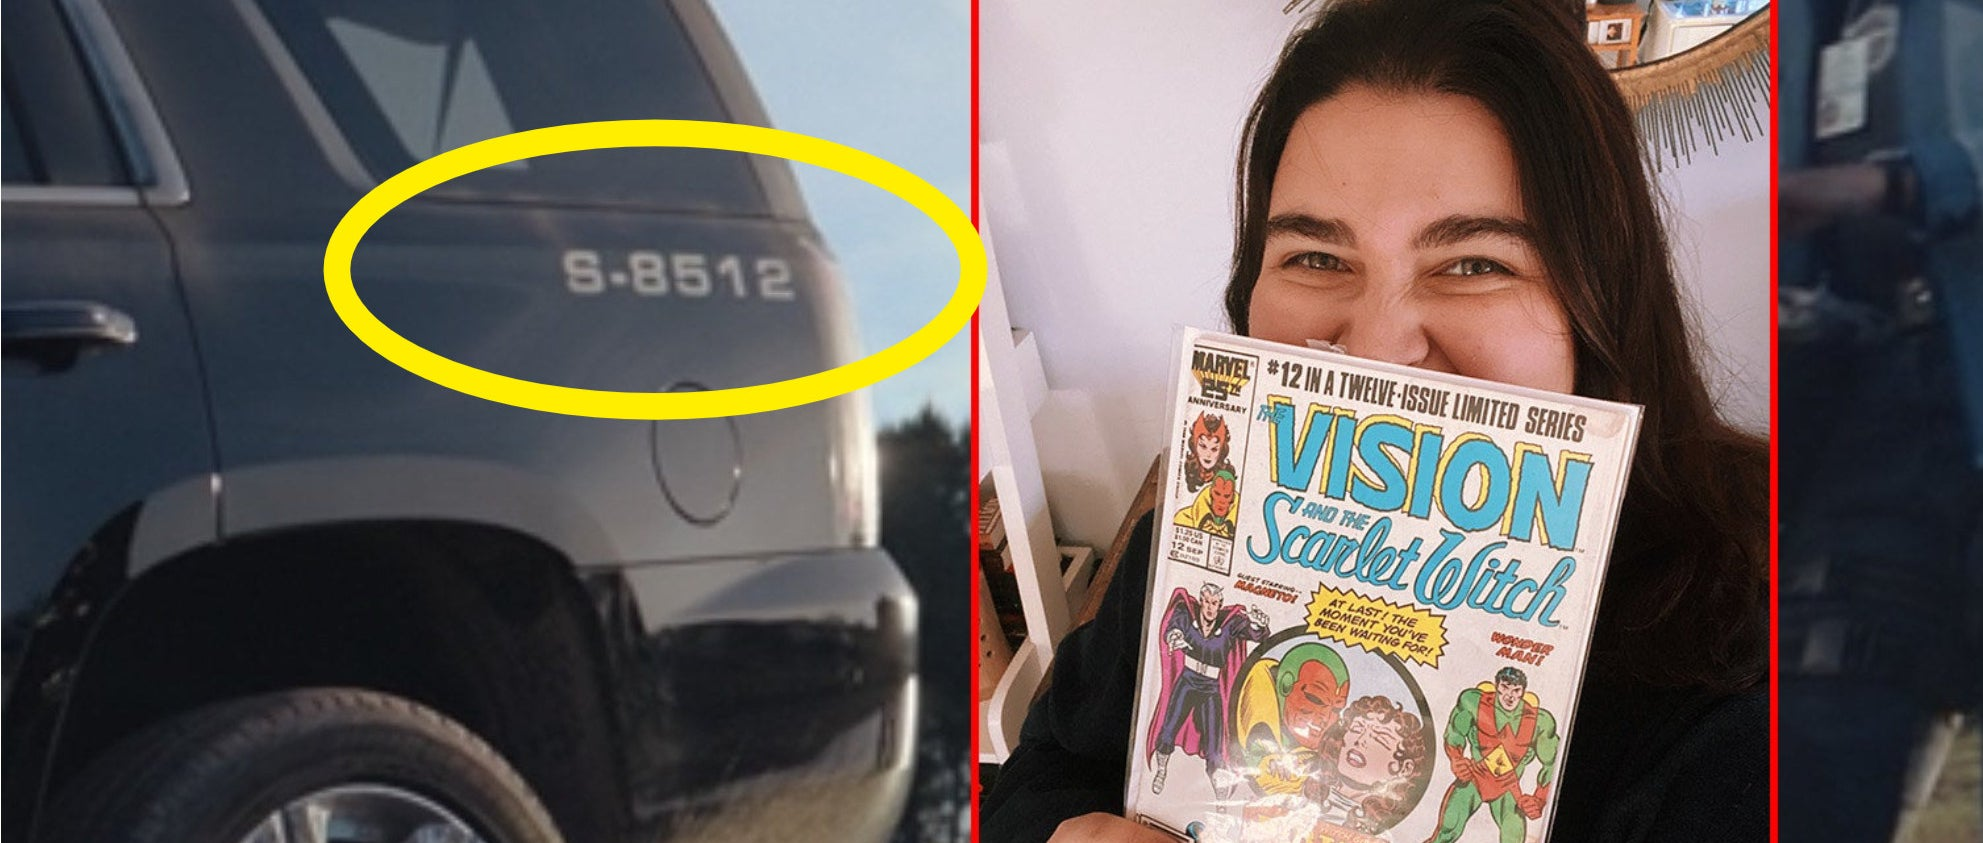 "A circle around the ""S-8512"" on Monica's car and a girl holding up a Vision and the Scarlet Witch comic book"